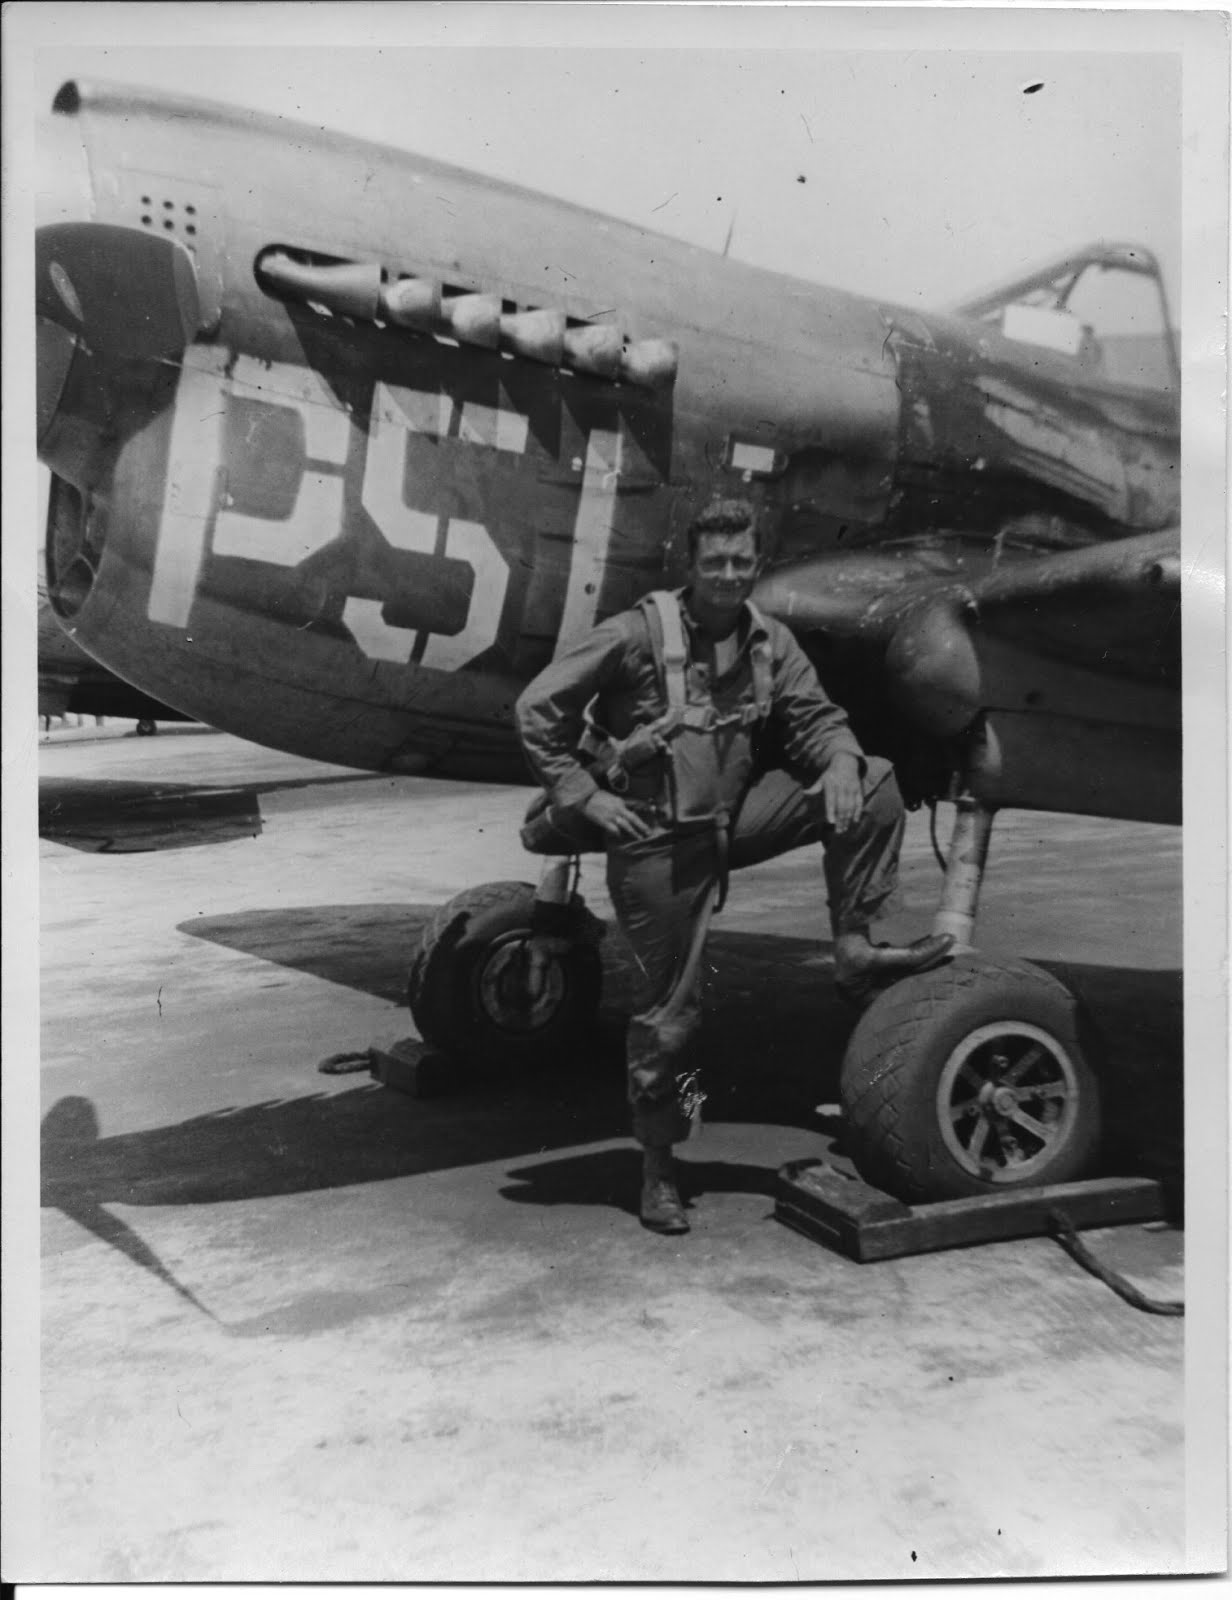 Bruce F Jepsen in front of P-51.